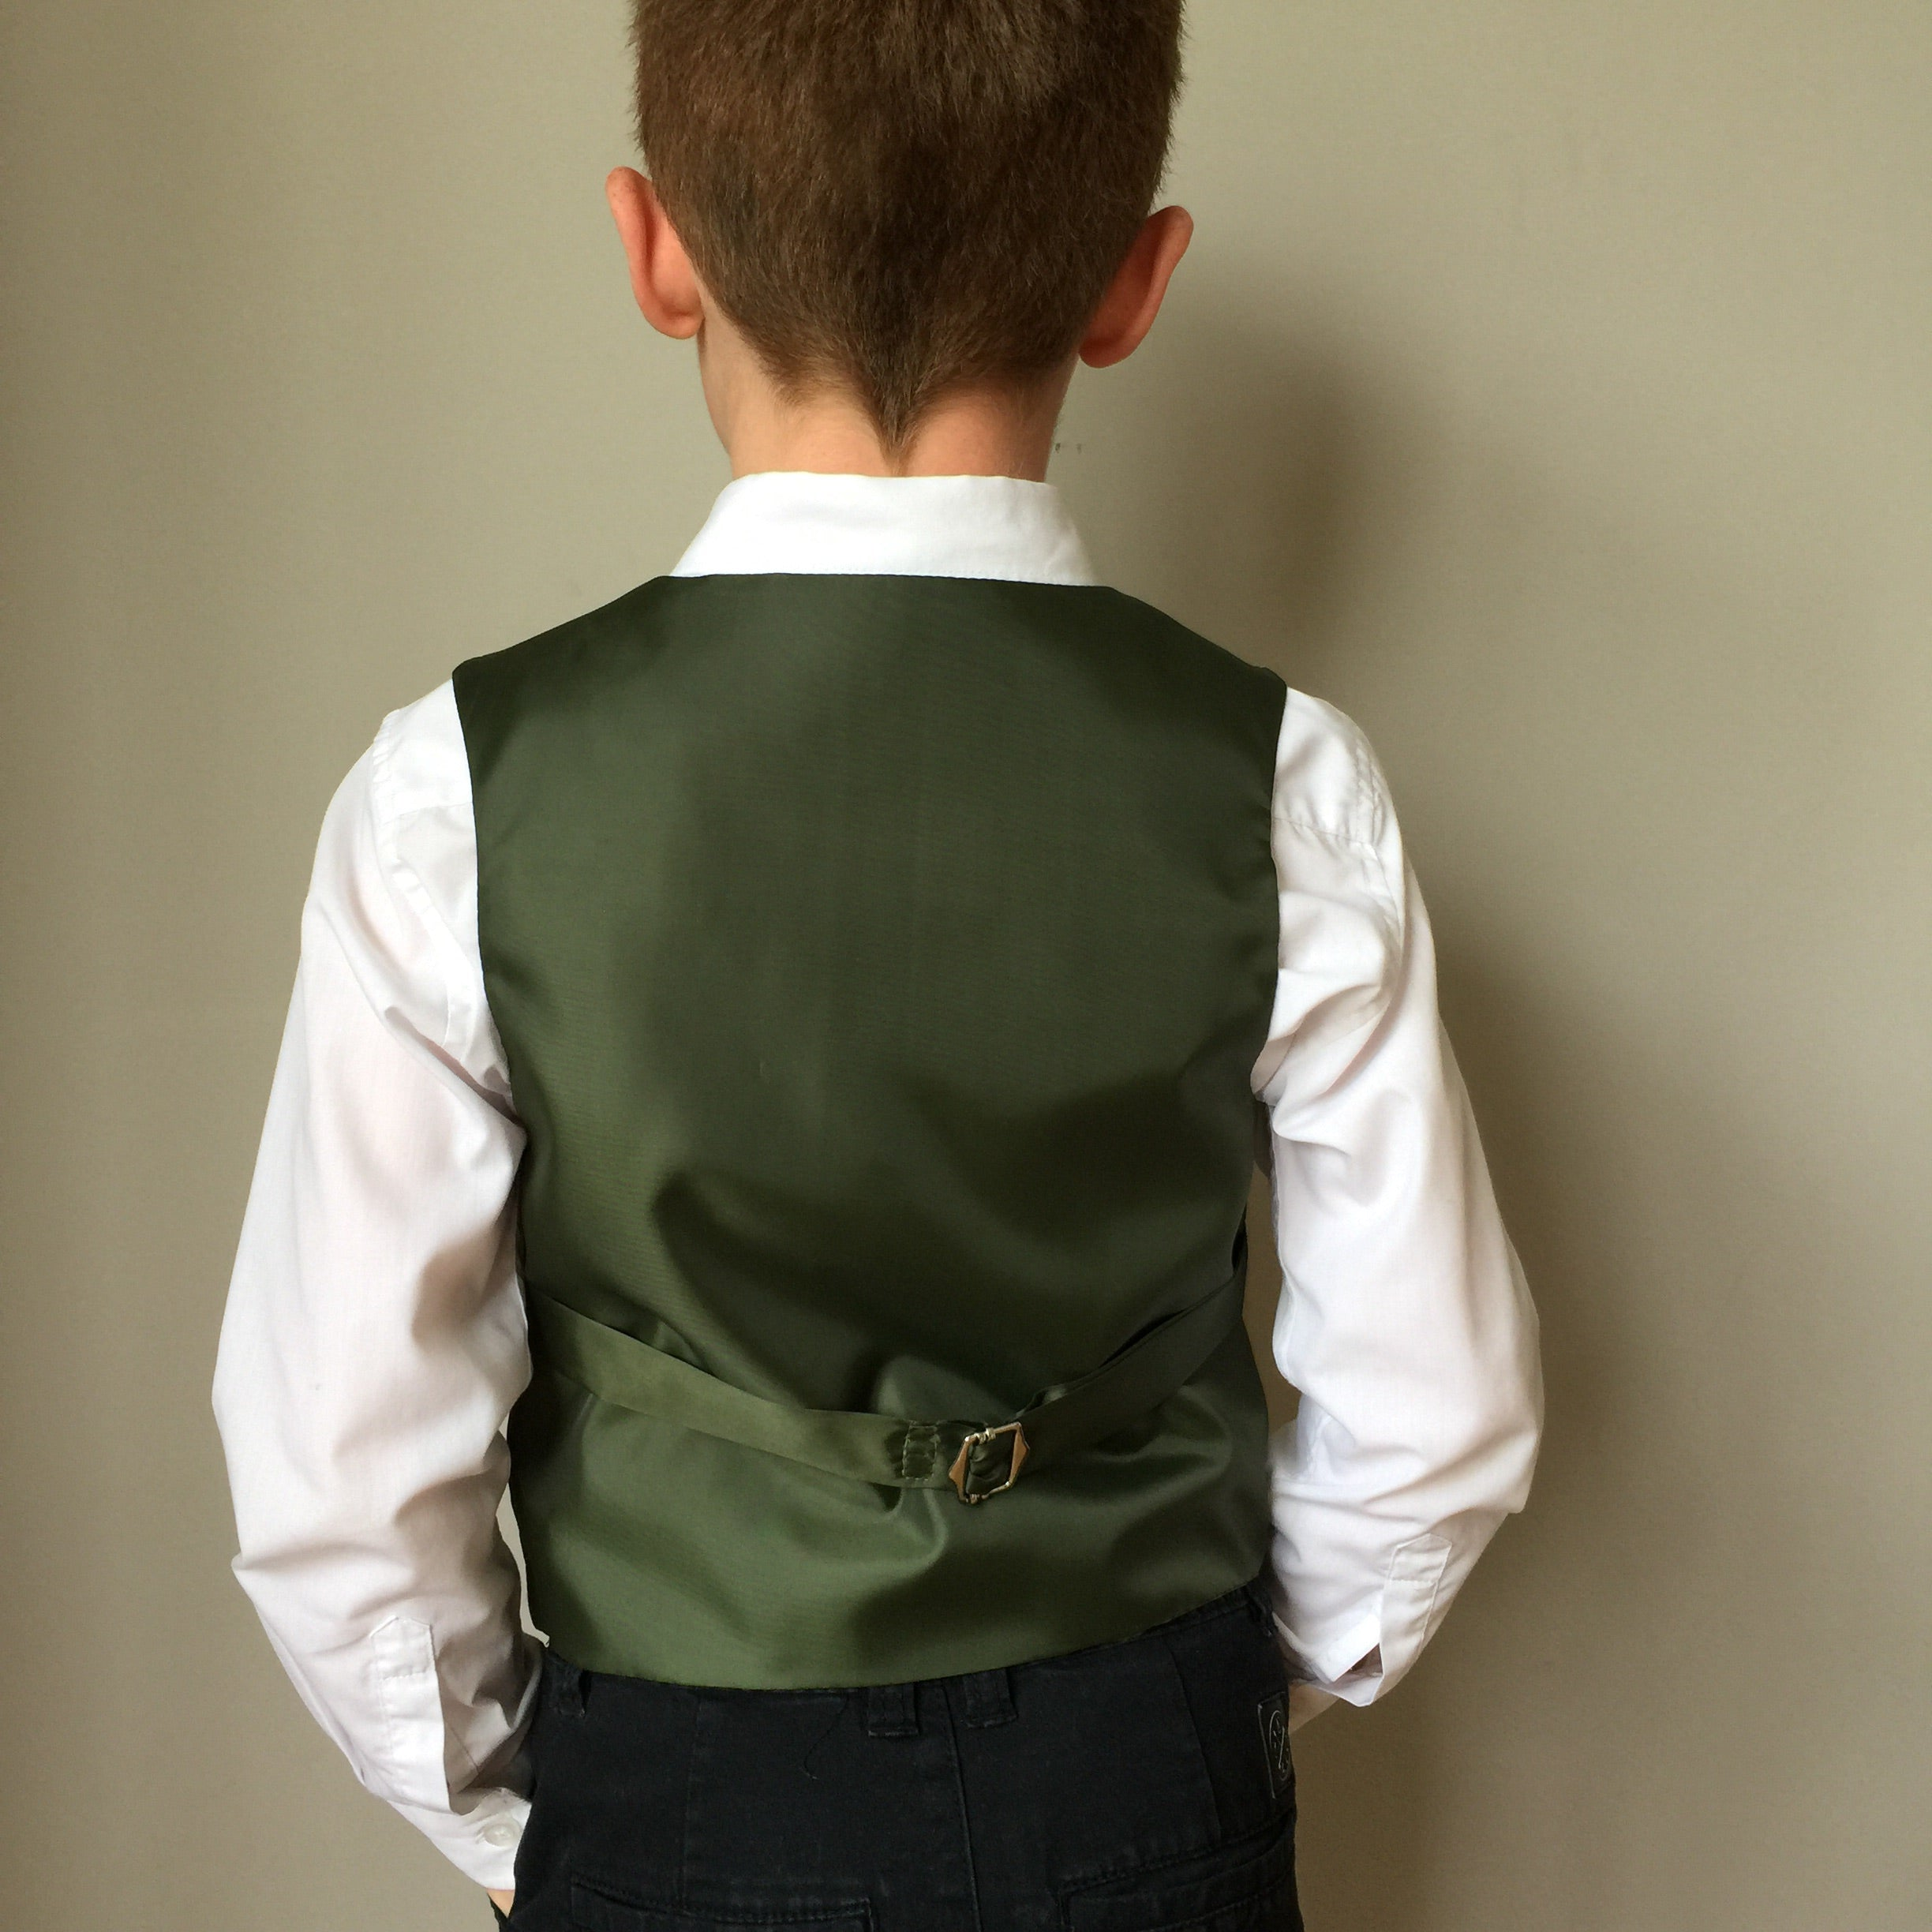 'Marius Pontmercy' boys waistcoat handmade in a moss and sea green herringbone British tweed - Limited Edition